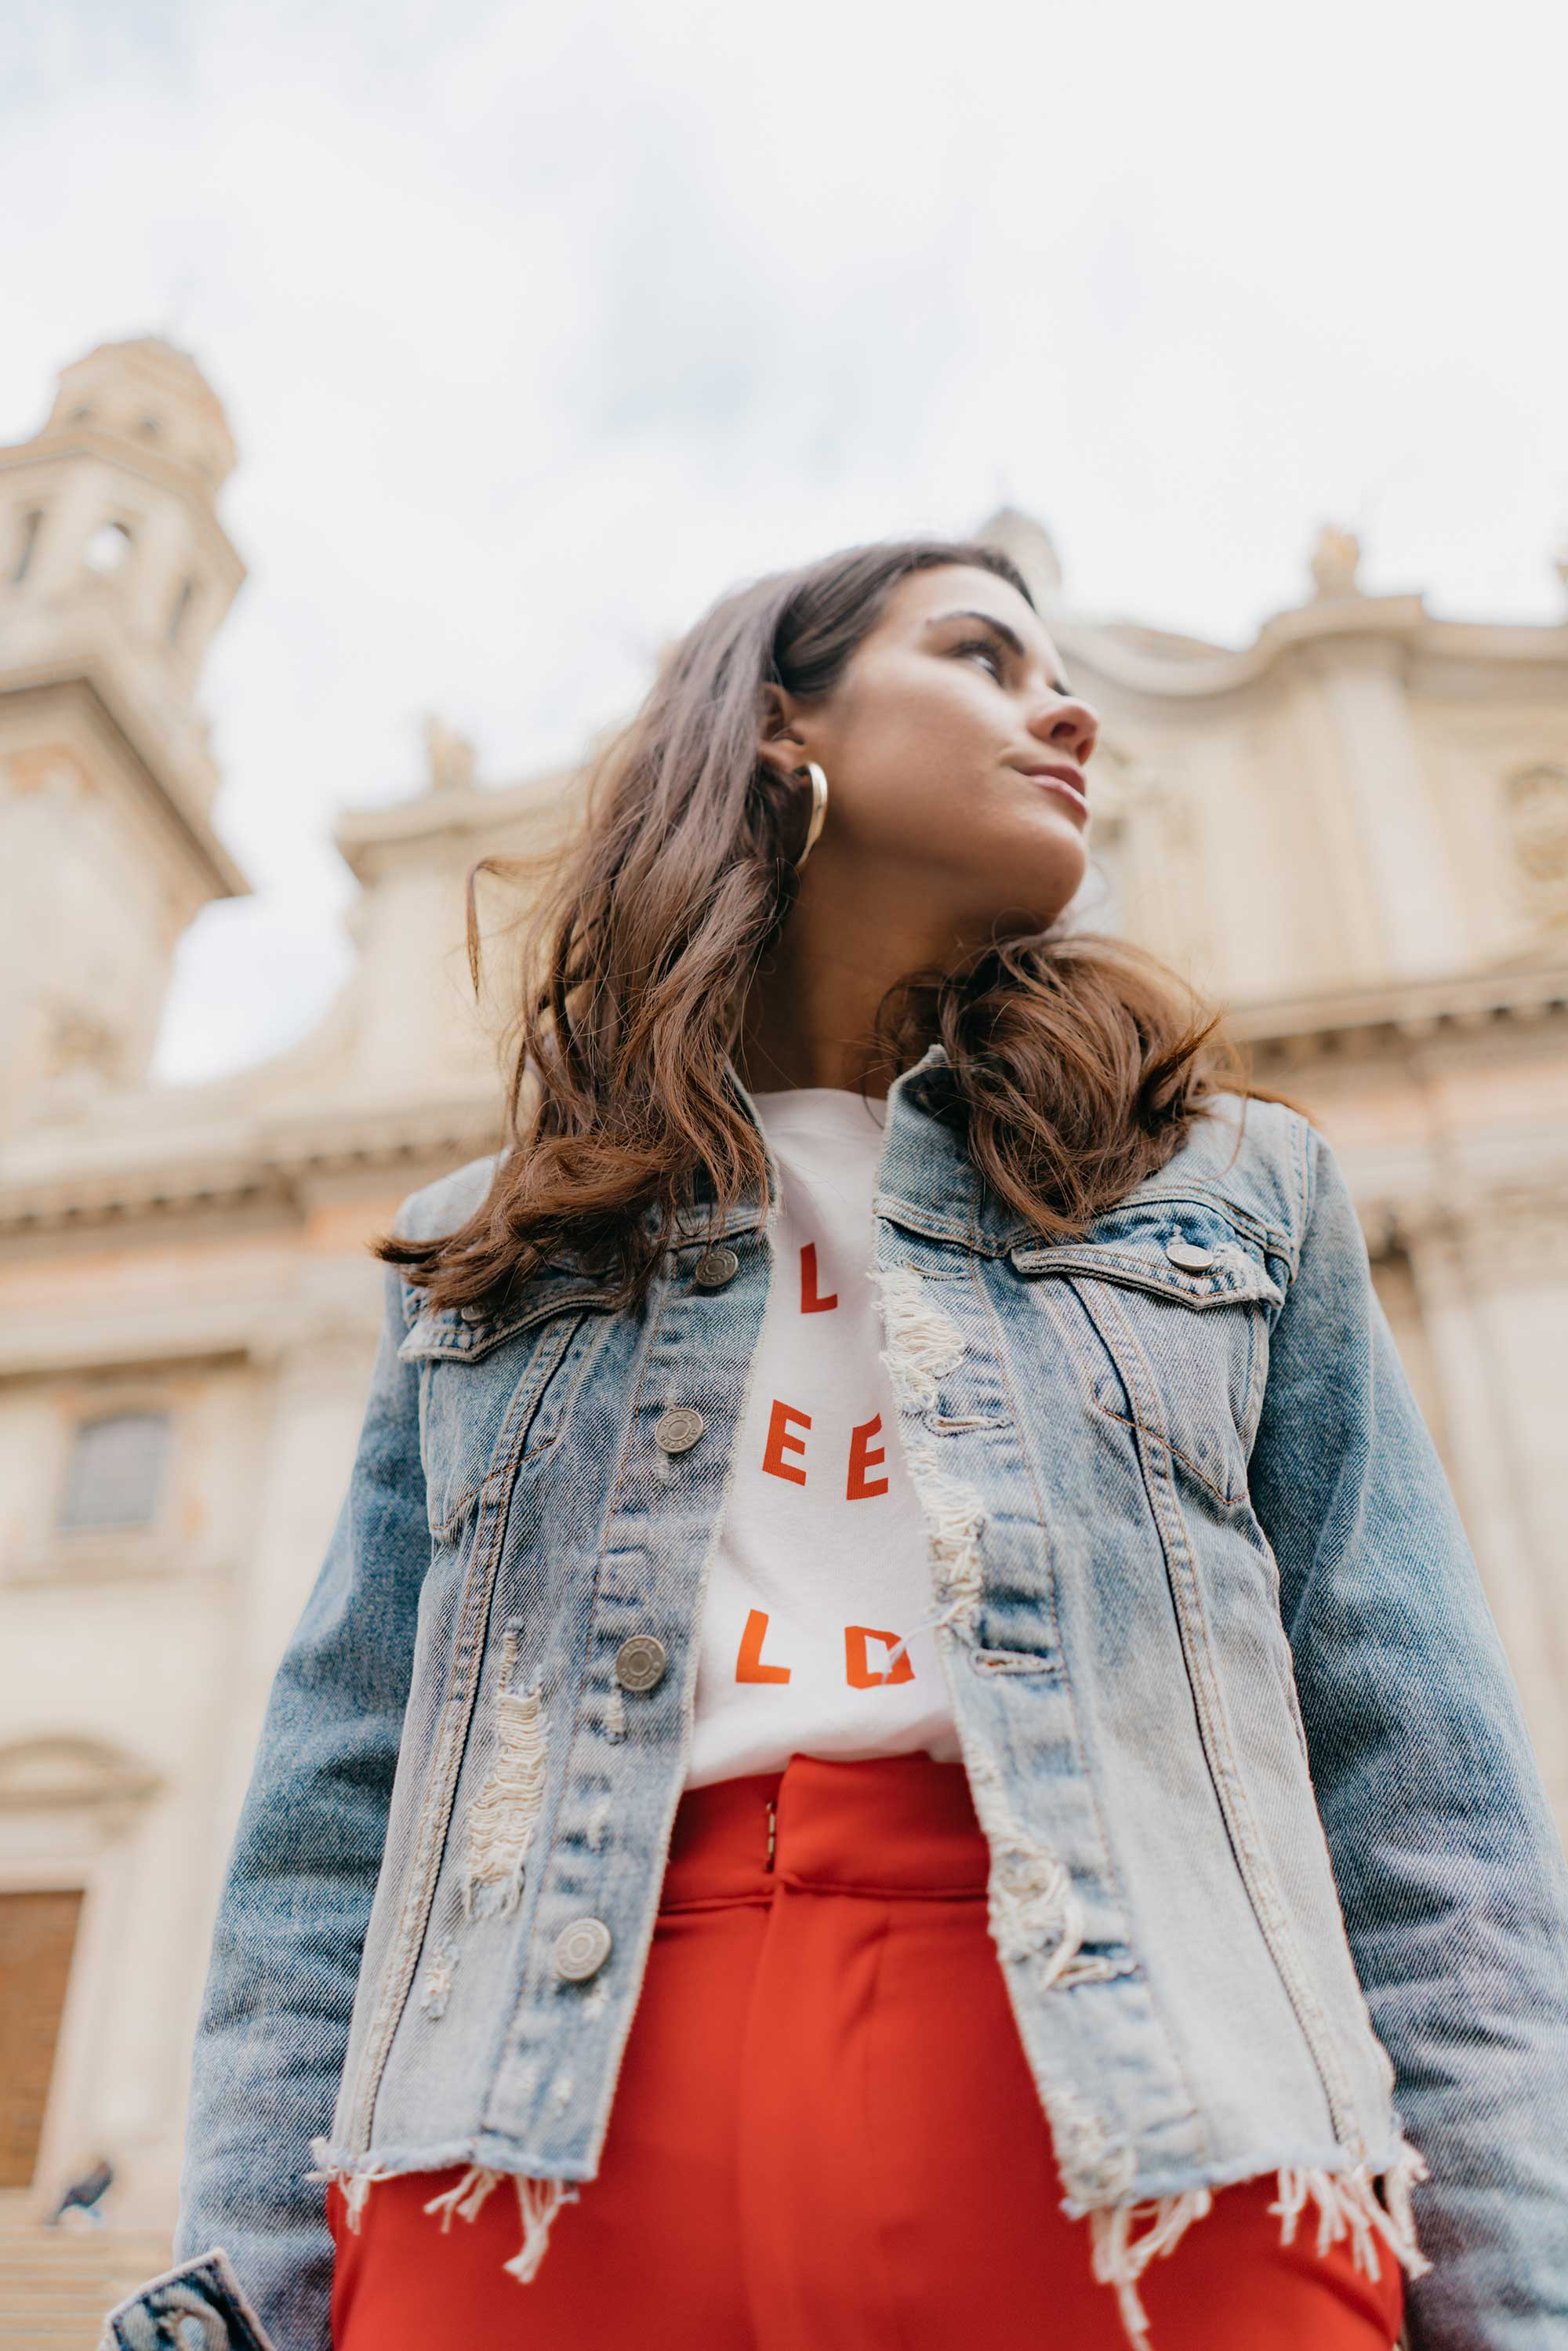 Red-Skinny-Pants,-All-You-Need-Is-Love'-Slogan-T-Shirt,-Cara-Cropped-Denim-Jacket,-Milan-Spring-Outfit8.jpg